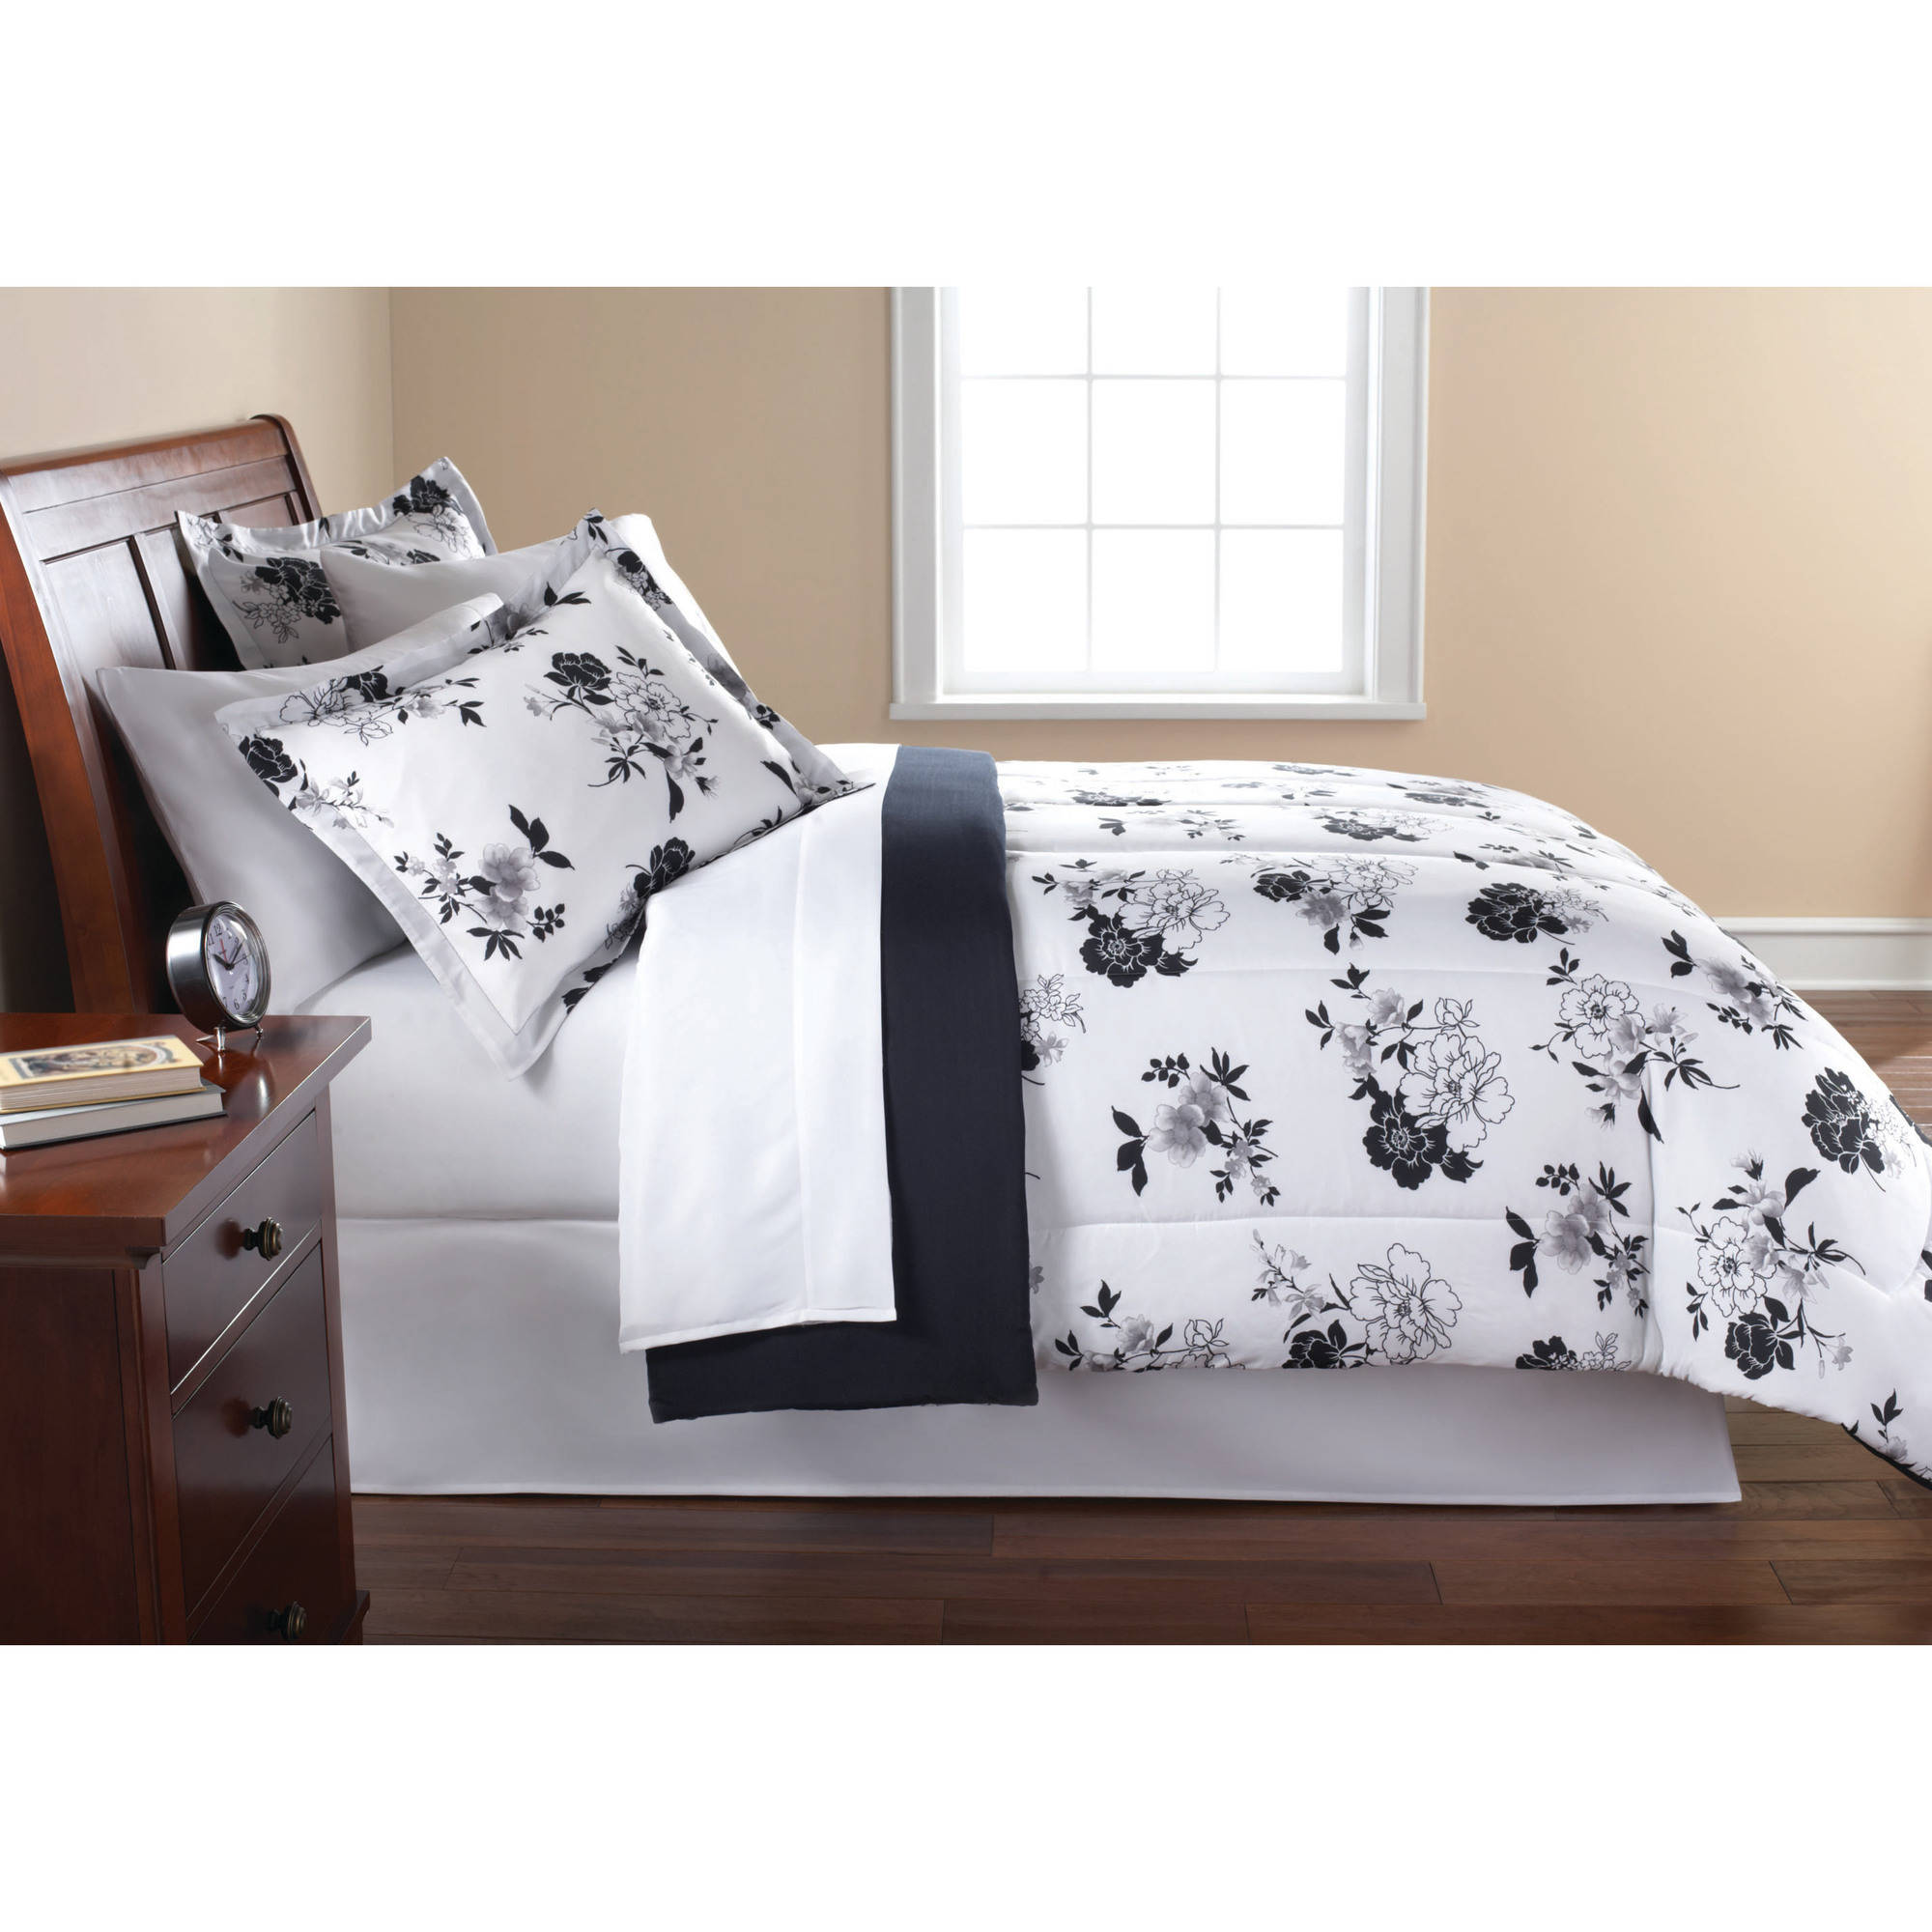 Yellow and gray floral bedding - Mainstays Black And White Floral Bed In A Bag Bedding Comforter Set Walmart Com